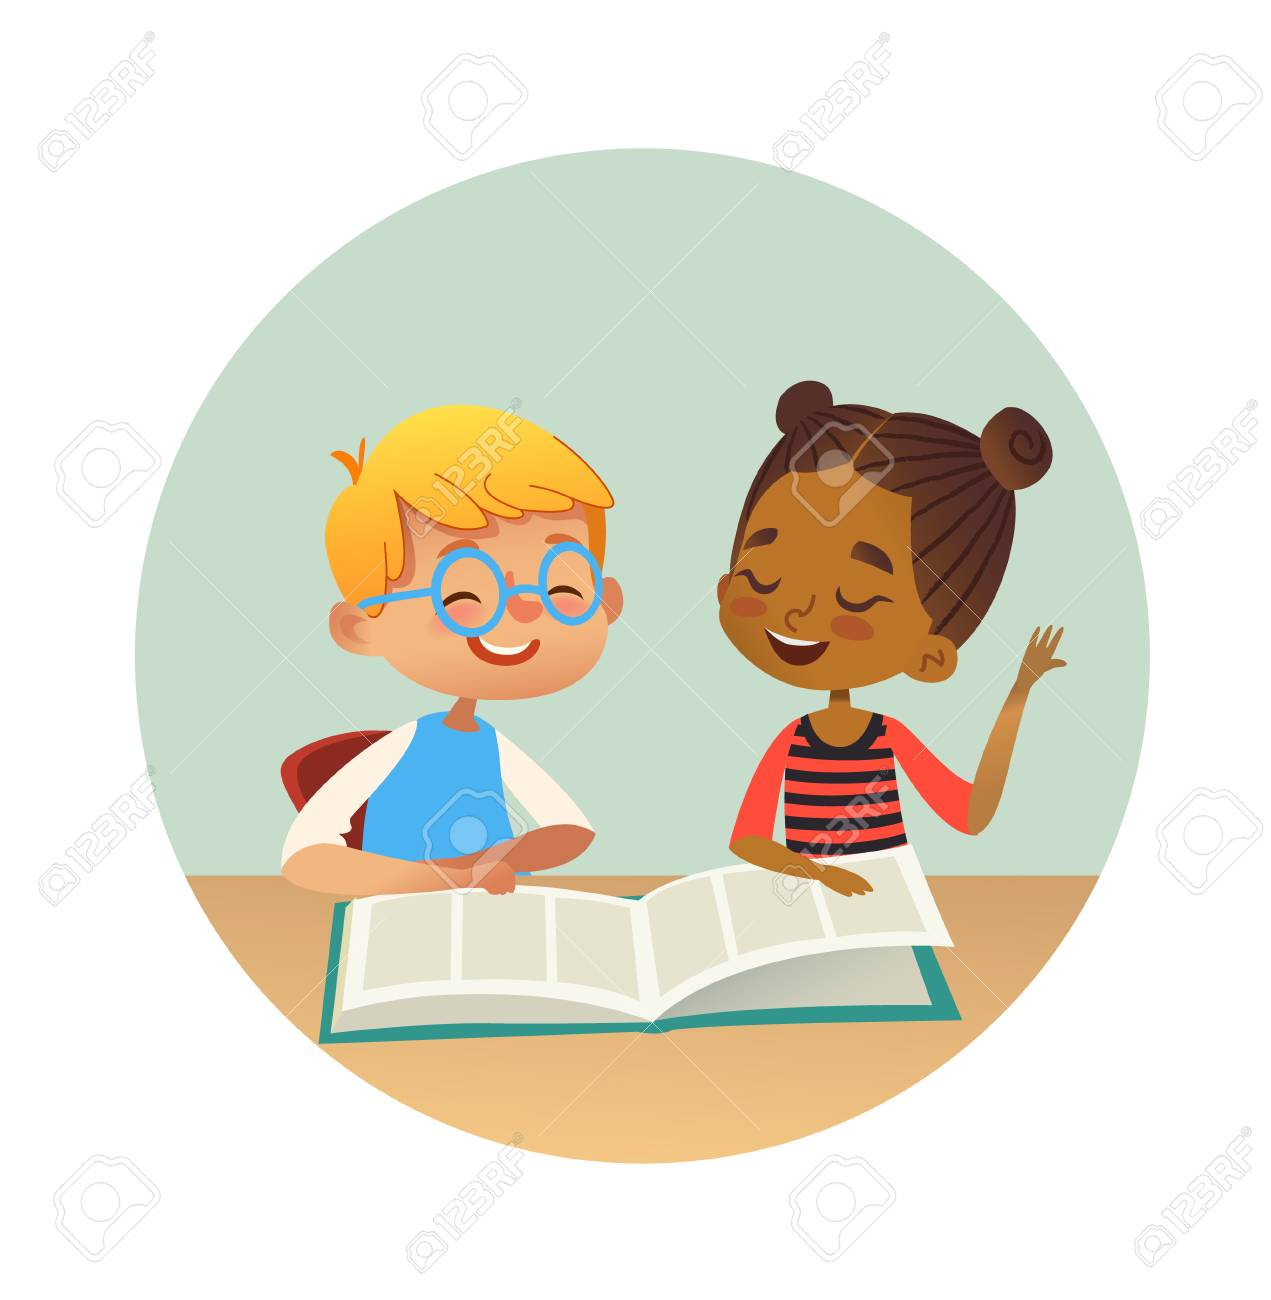 Smiling multiracial boy and girl reading books and talking to each other at school library. School kids discussing literature in round frames. Cartoon vector illustration for banner, poster. - 107381276